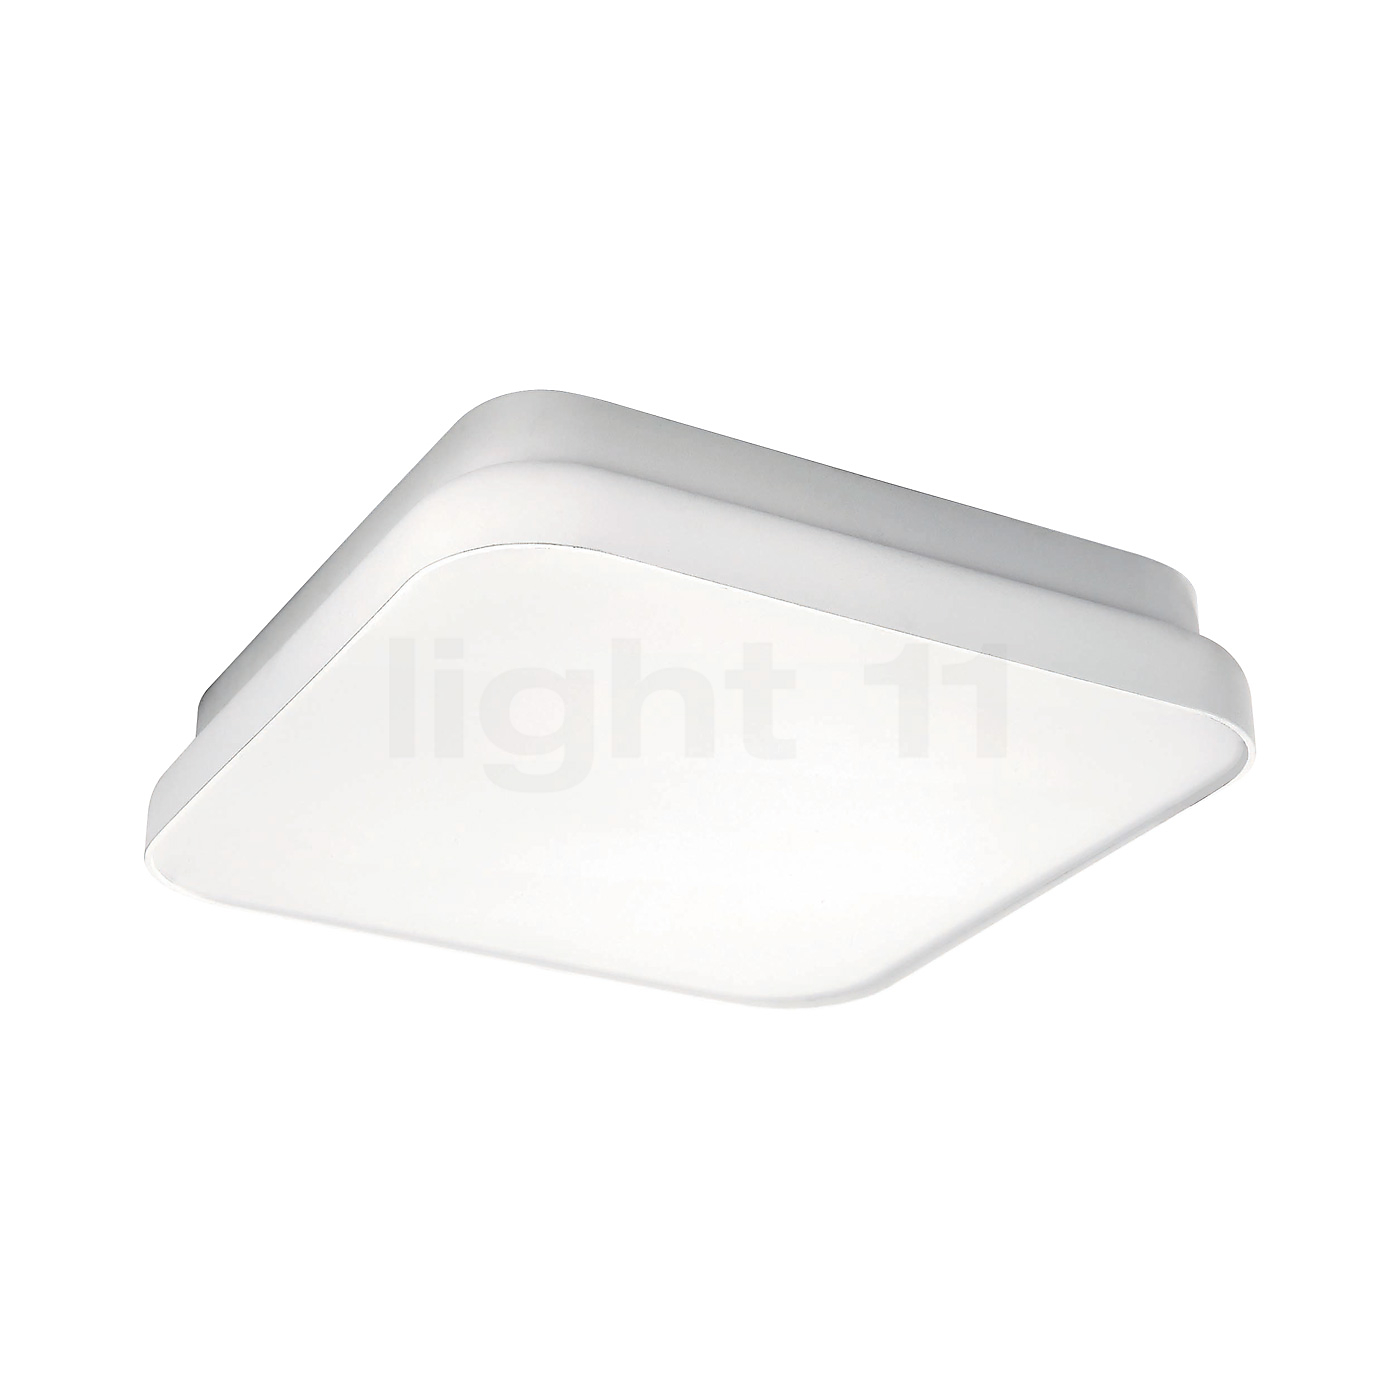 philips ecomoods ceiling light photo - 6